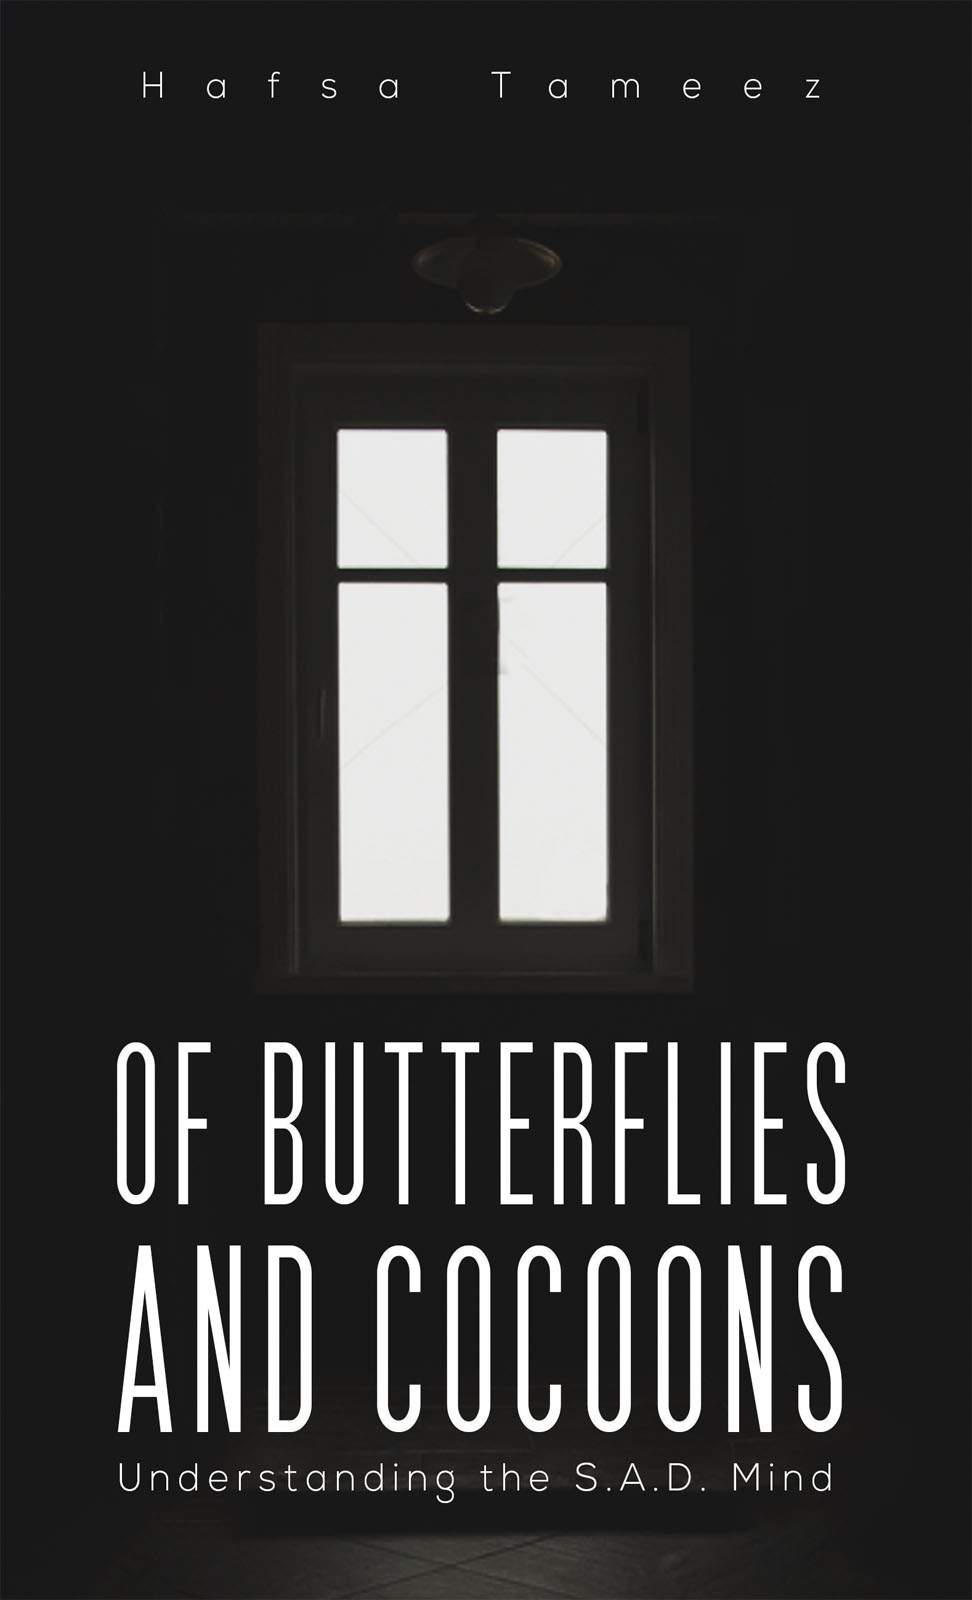 Of Butterflies and Cocoons